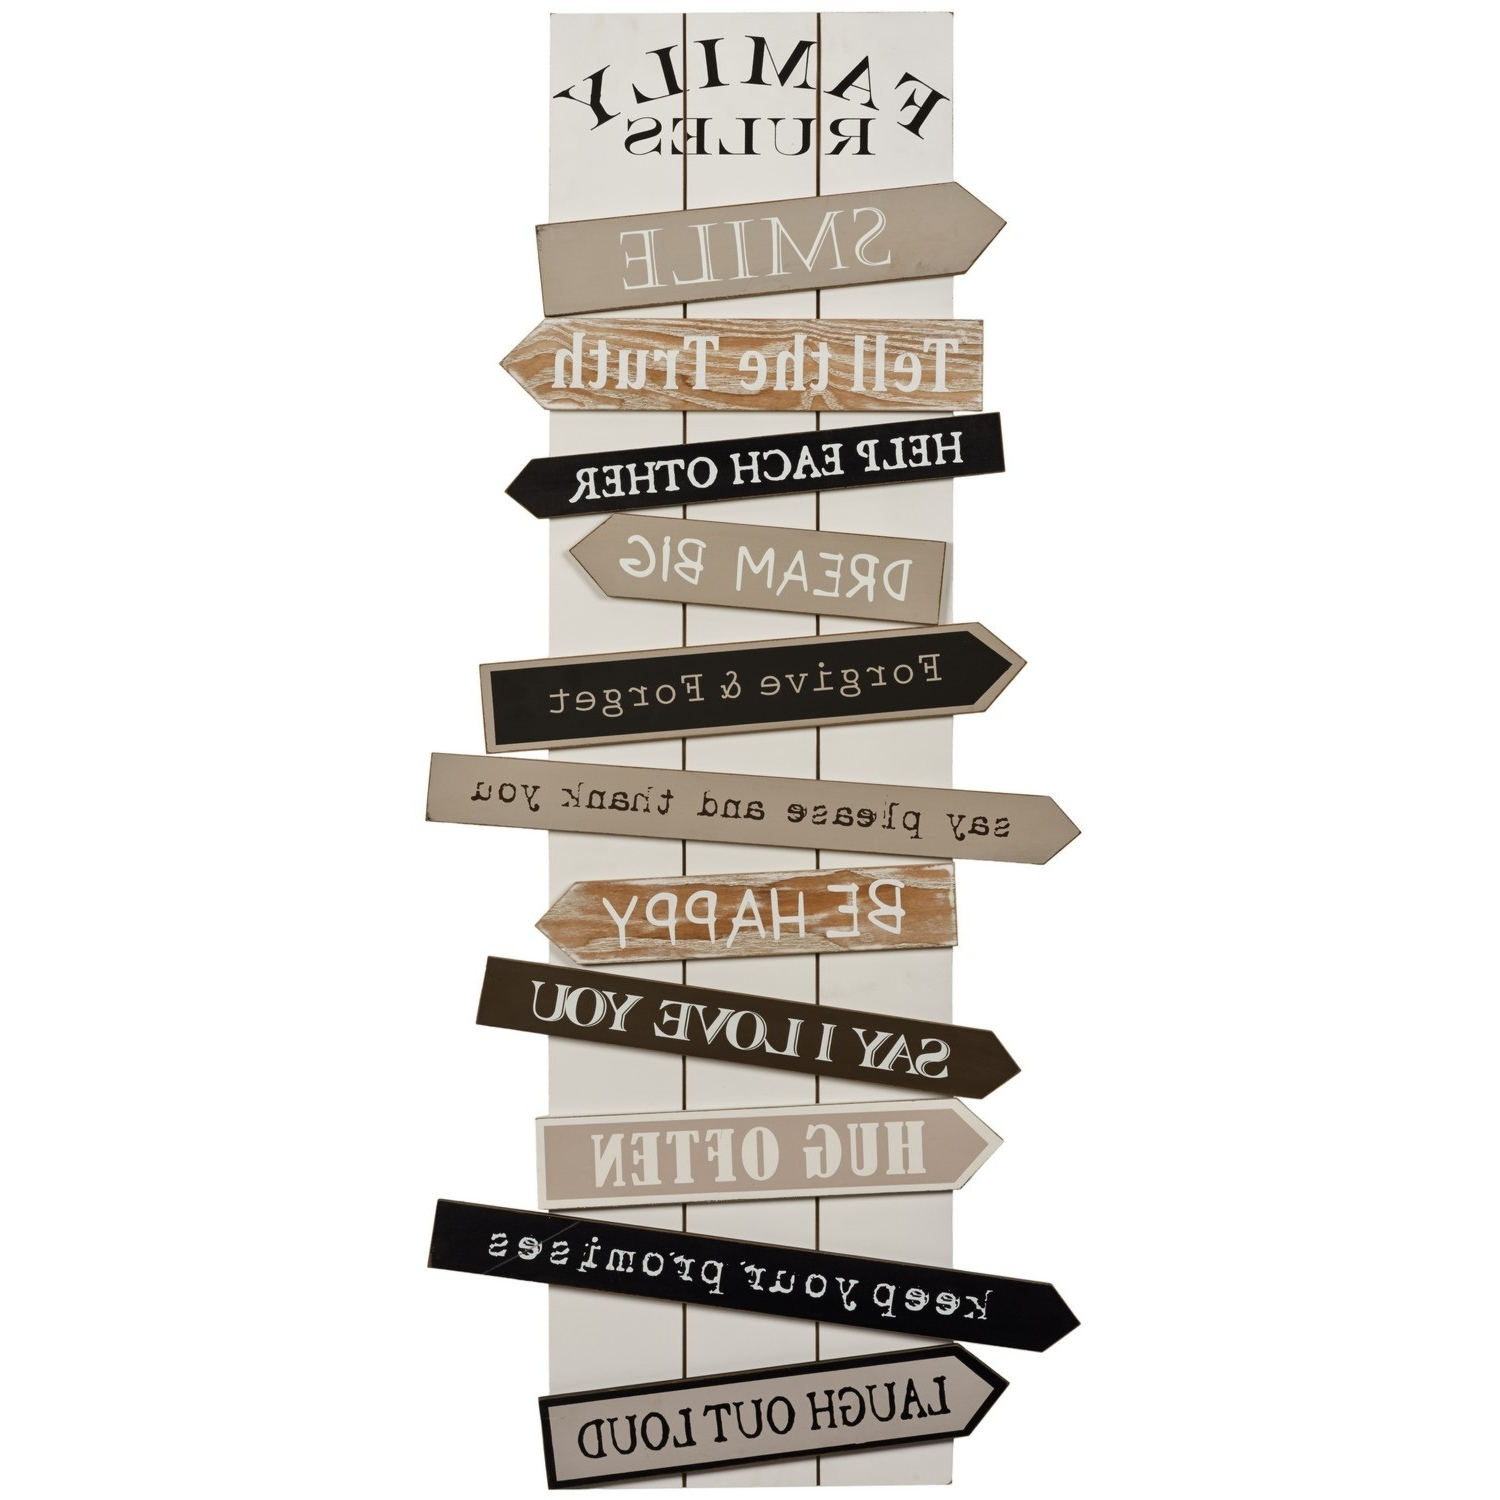 Popular Wall Art Designs: Family Rules Wall Art Vintage Wall Art Wooden With Wood Word Wall Art (View 12 of 15)